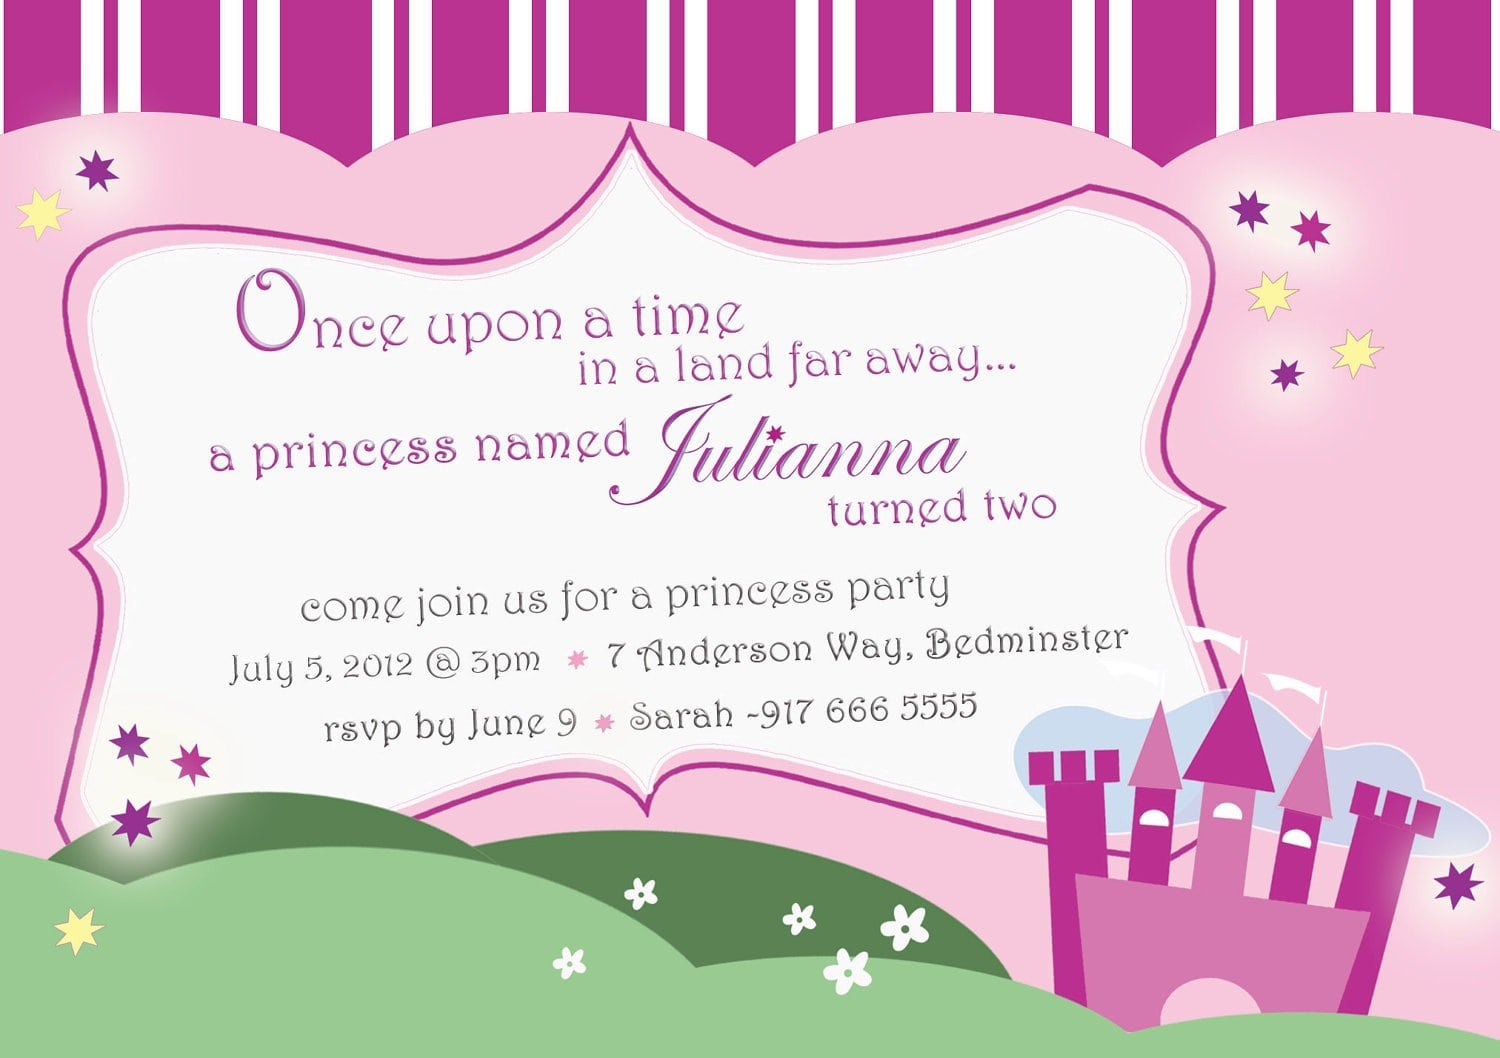 Disney princess birthday invitation eczalinf disney princess birthday invitation filmwisefo